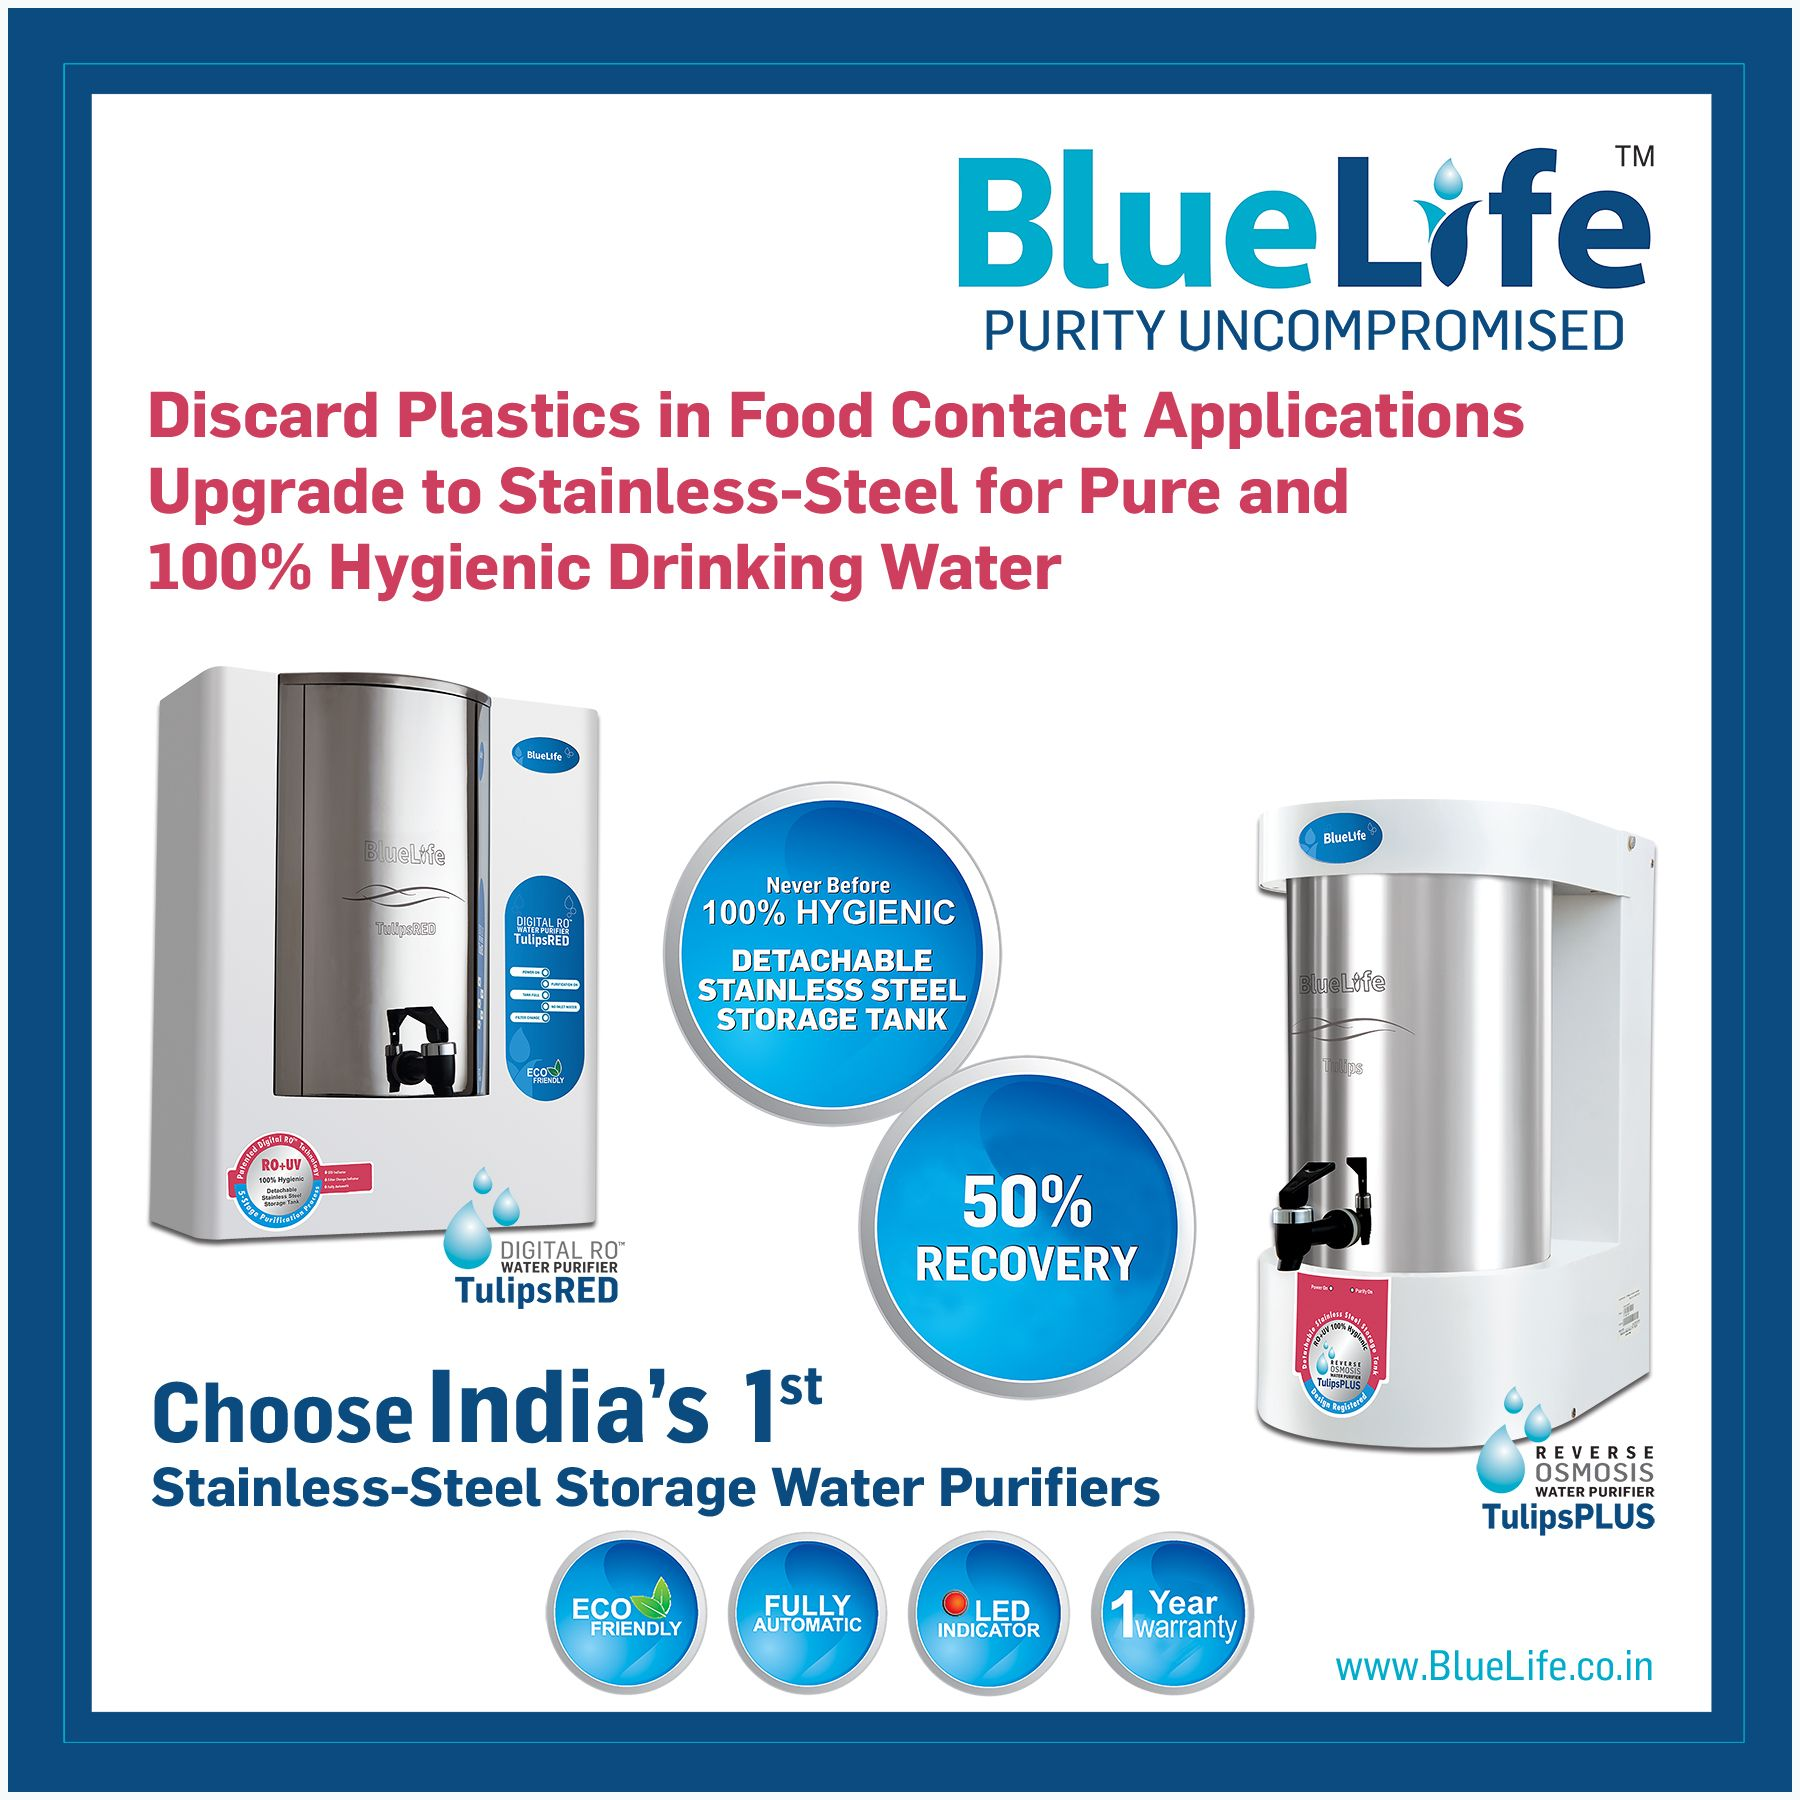 It's Time to Replace Plastic Storage Water Purifiers